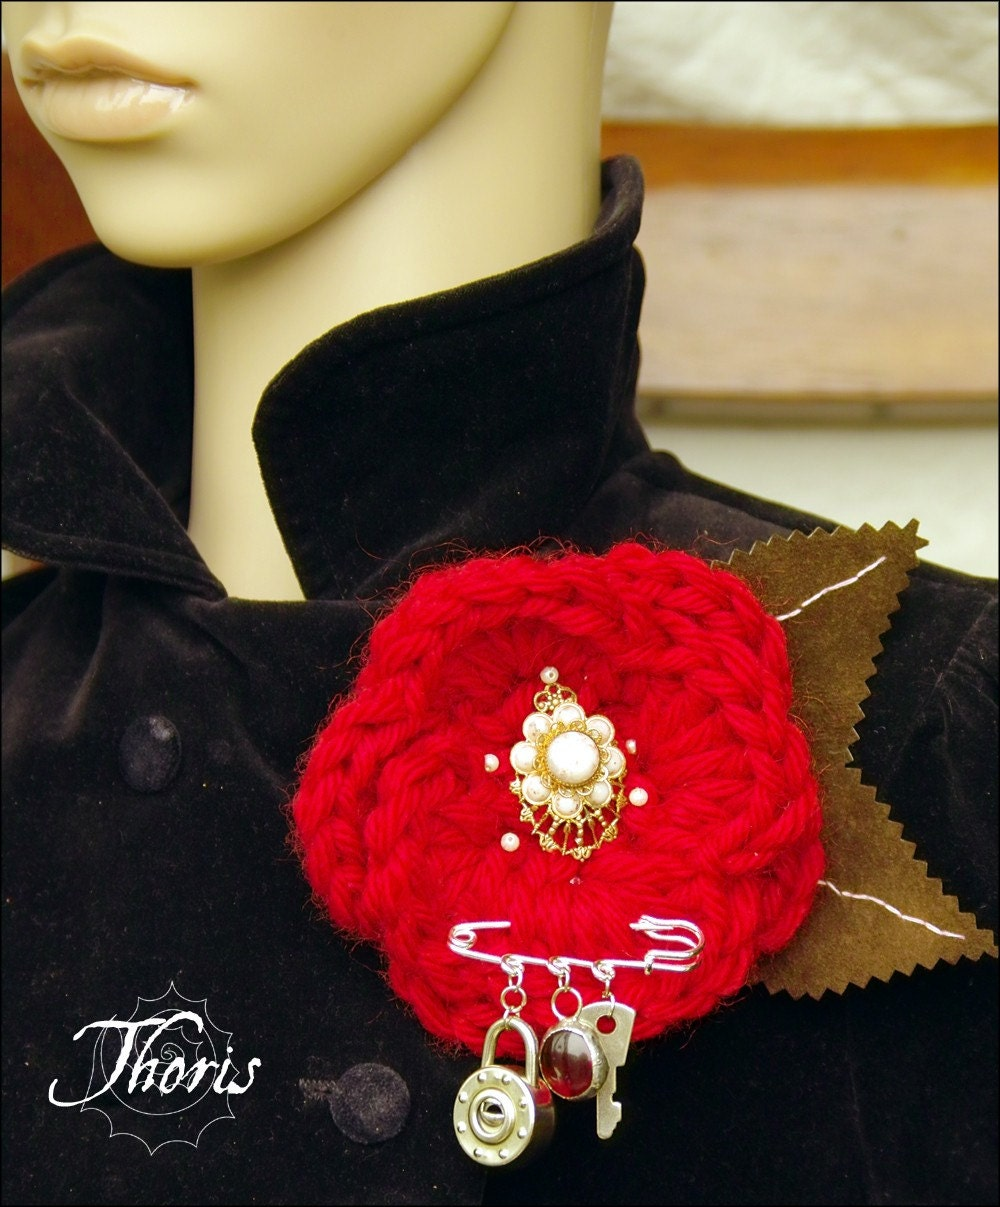 Key to the Rose Garden - Crochet Red Rose Brooch by Thoris Designs on Etsy